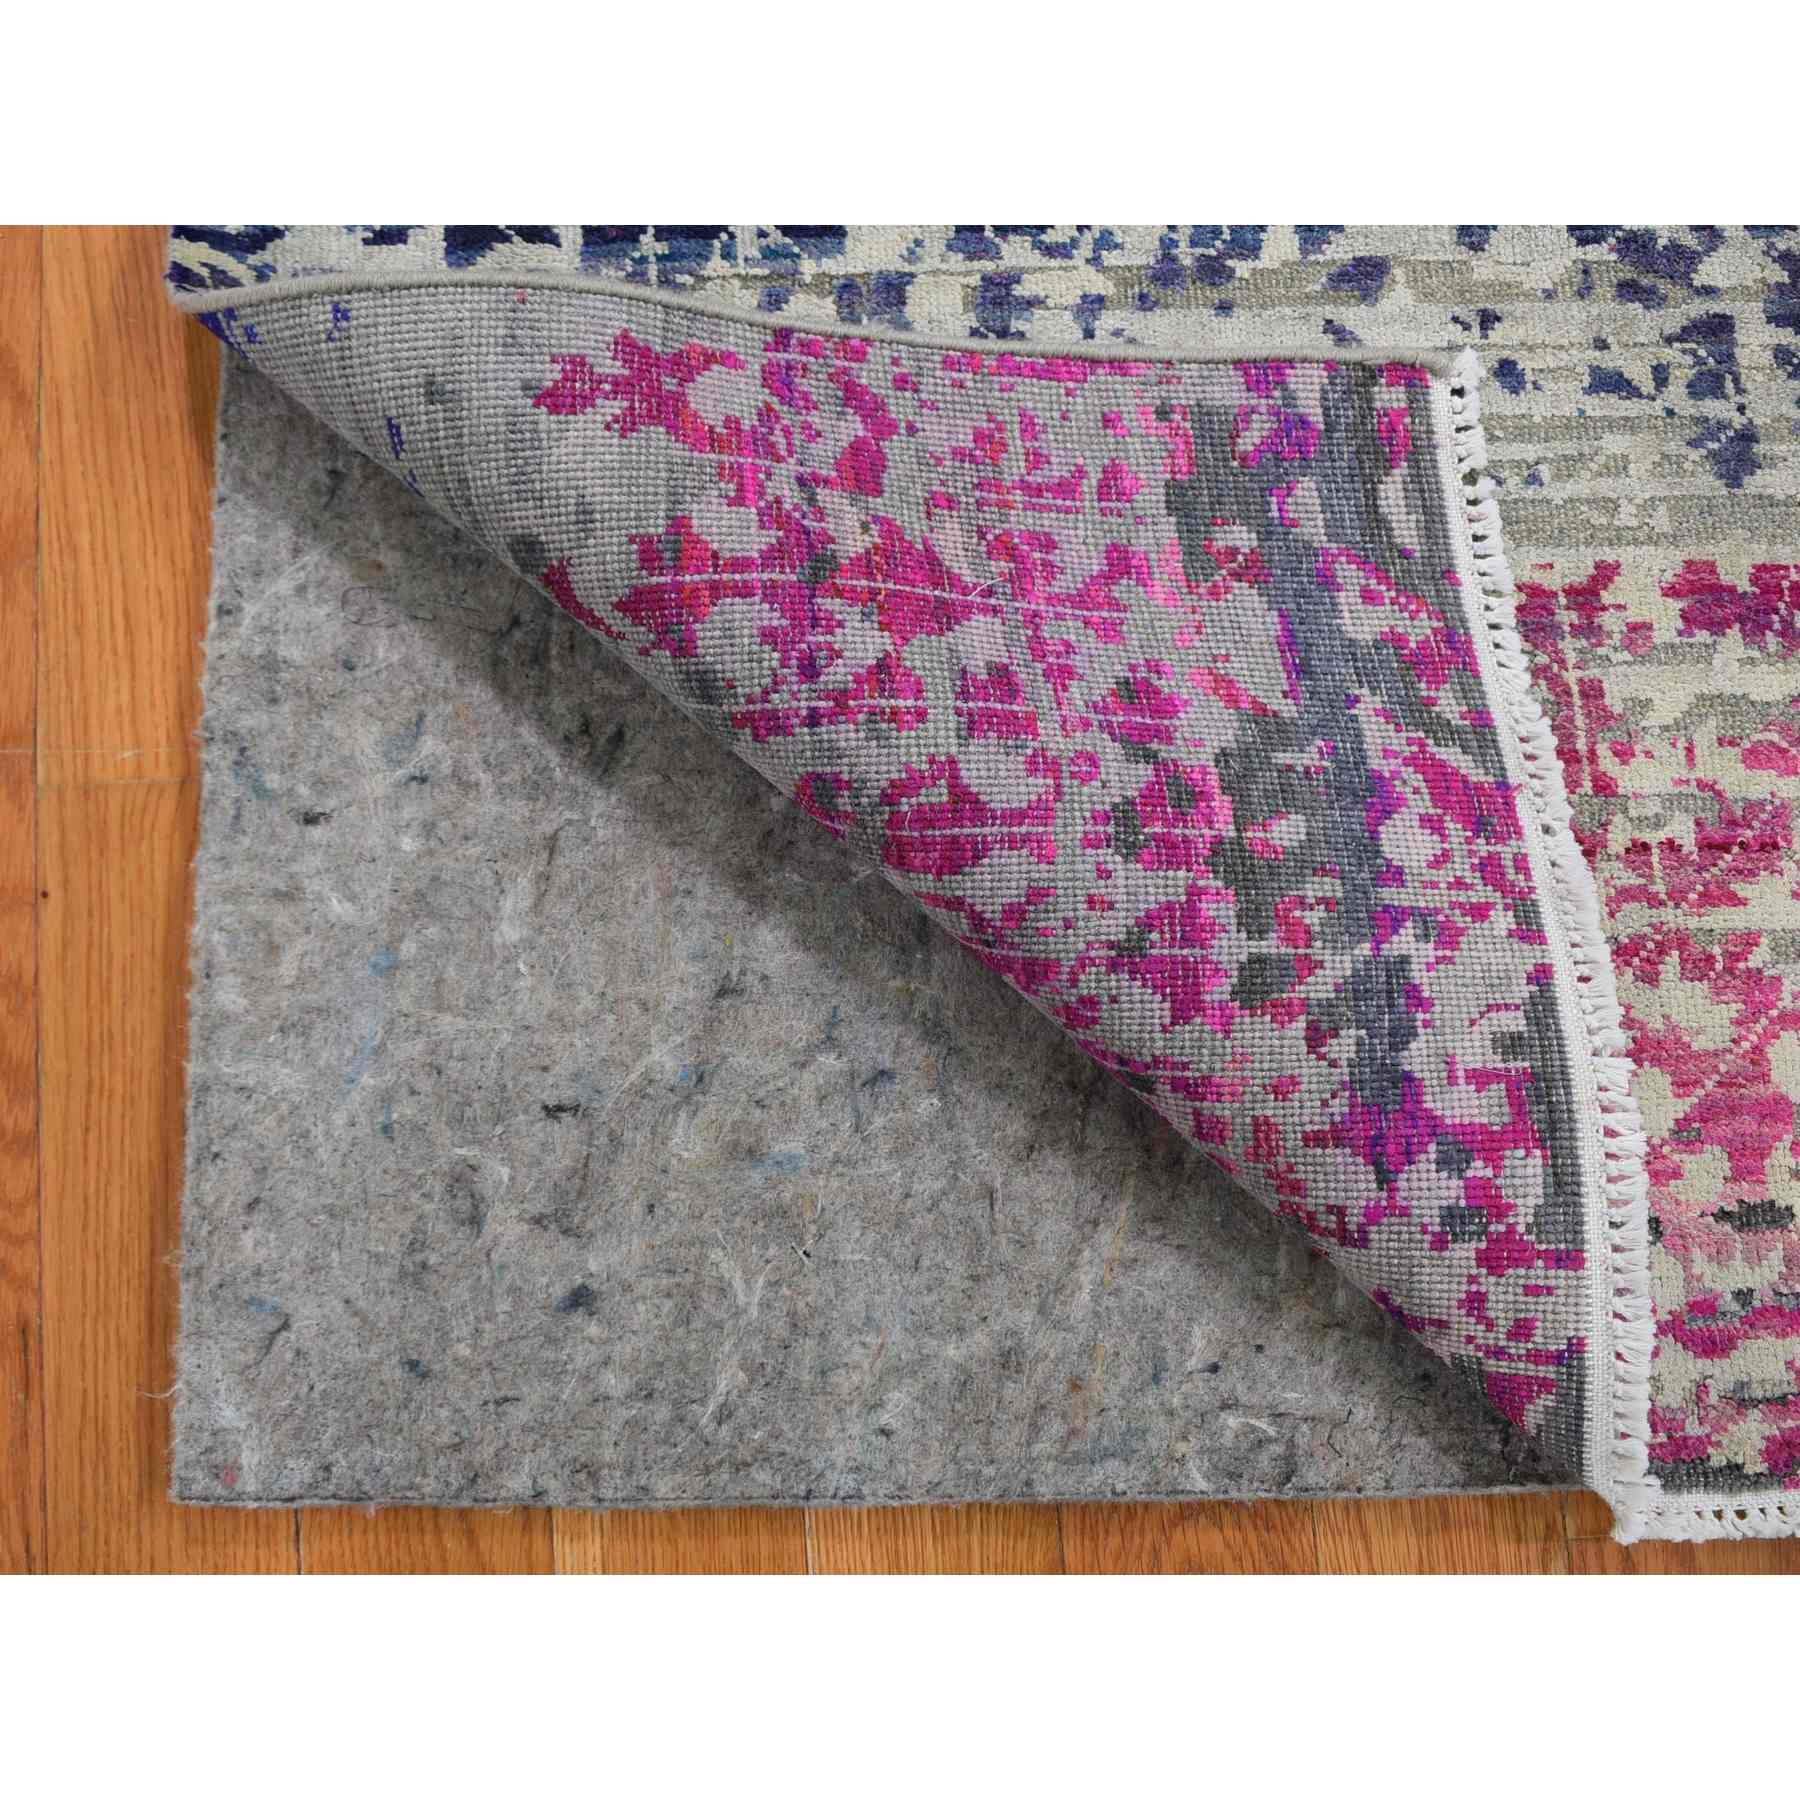 2'x2' Sample Gray Sari Silk With Textured Wool Hand Knotted Oriental Rug